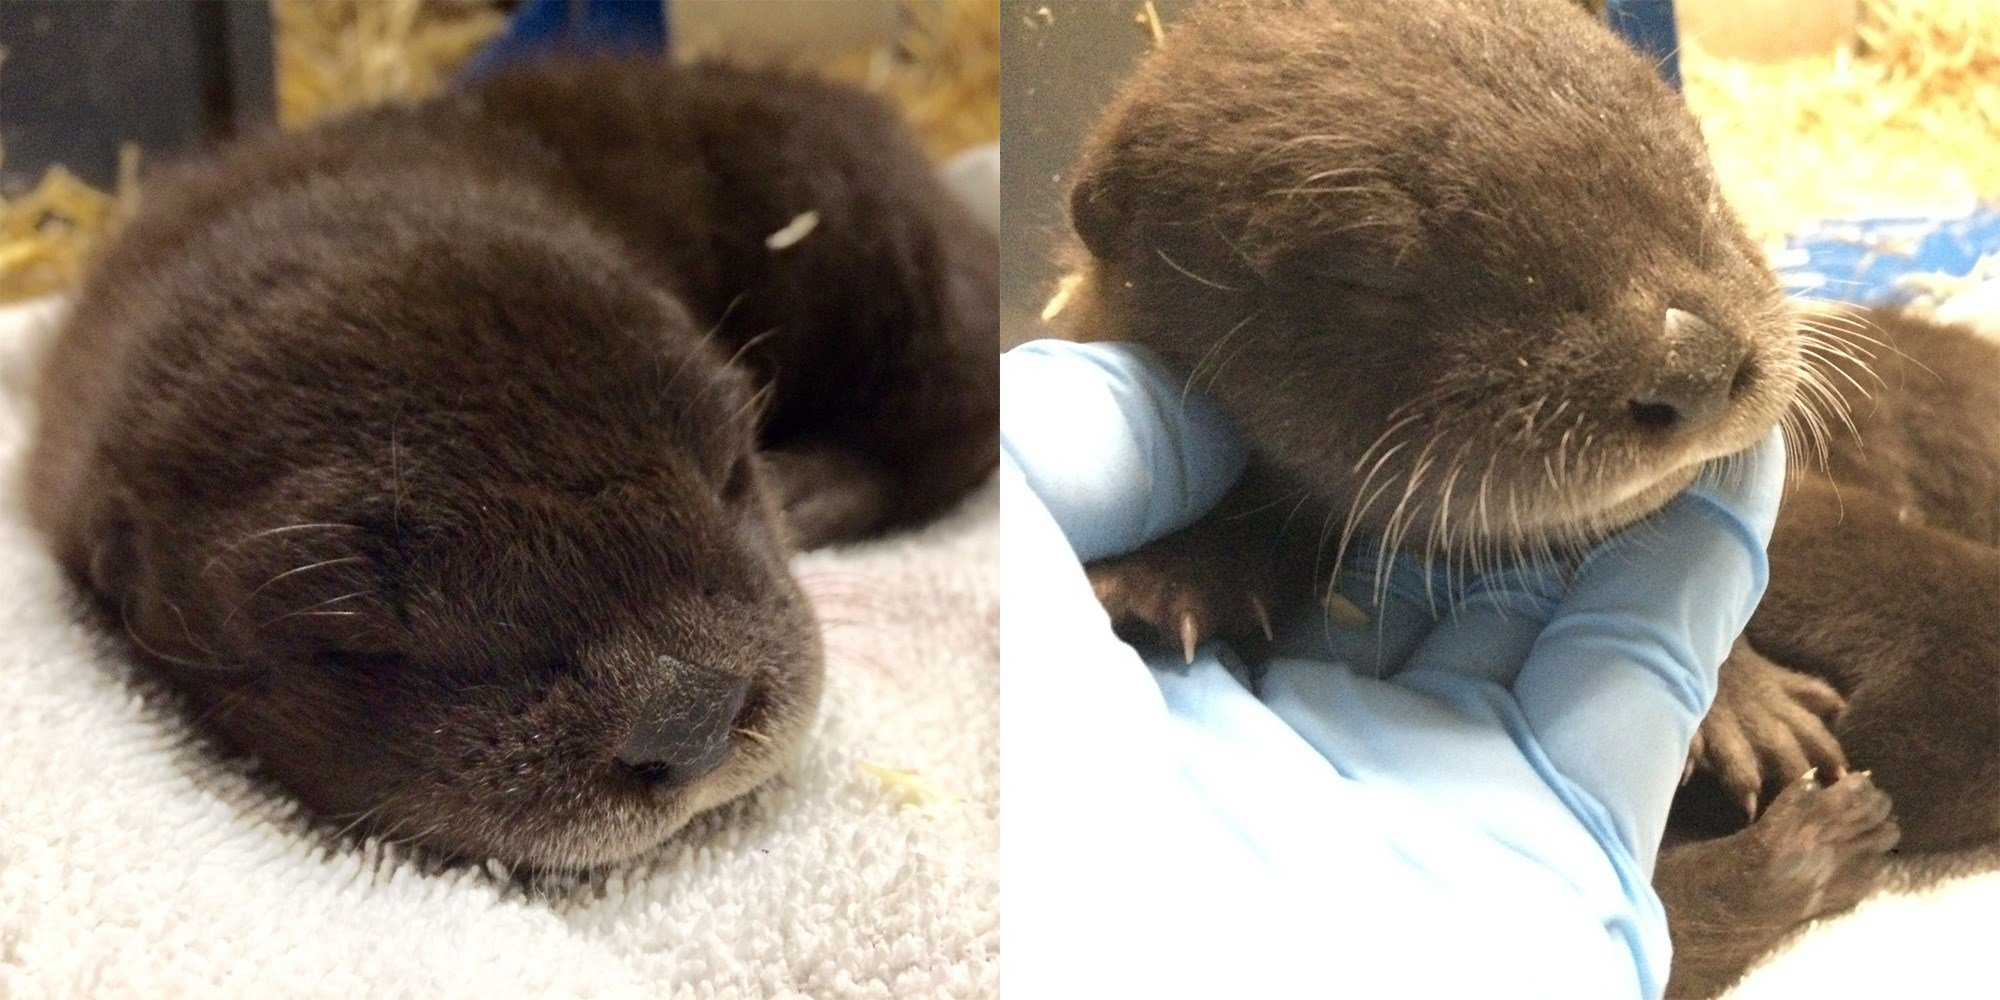 Oregon Zoo keepers are inviting the public to weigh in on names for two 4-week-old river otters — one male (left) and one female — seen here during a recent health check-up. Photo by Celess Edinger, courtesy of the Oregon Zoo.